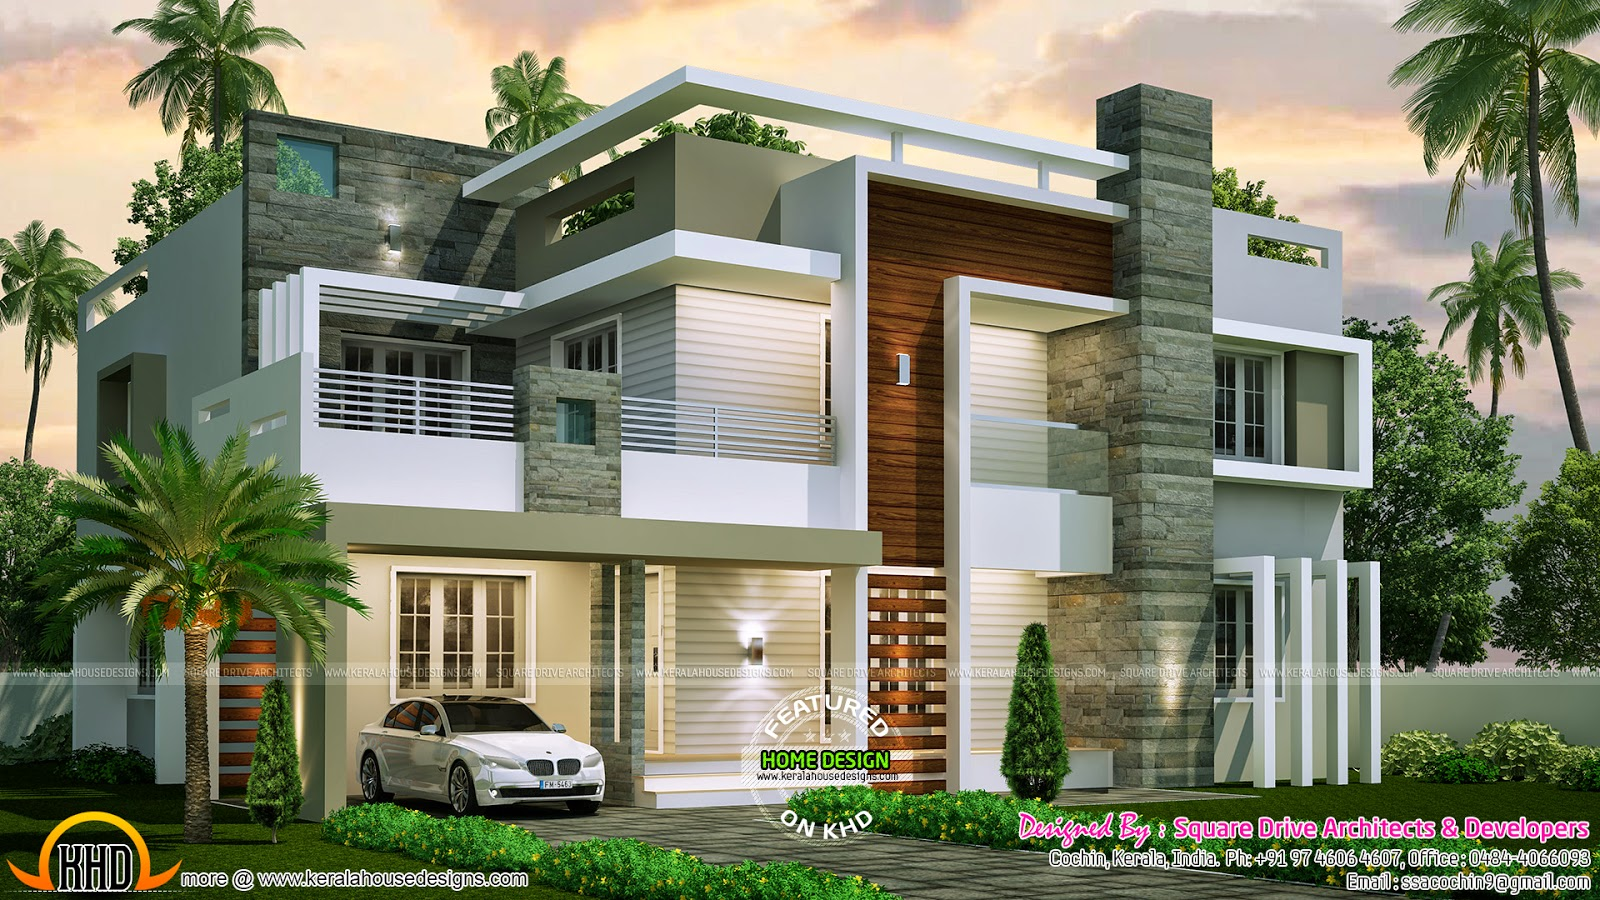 4 bedroom contemporary home design kerala home design for New contemporary home designs